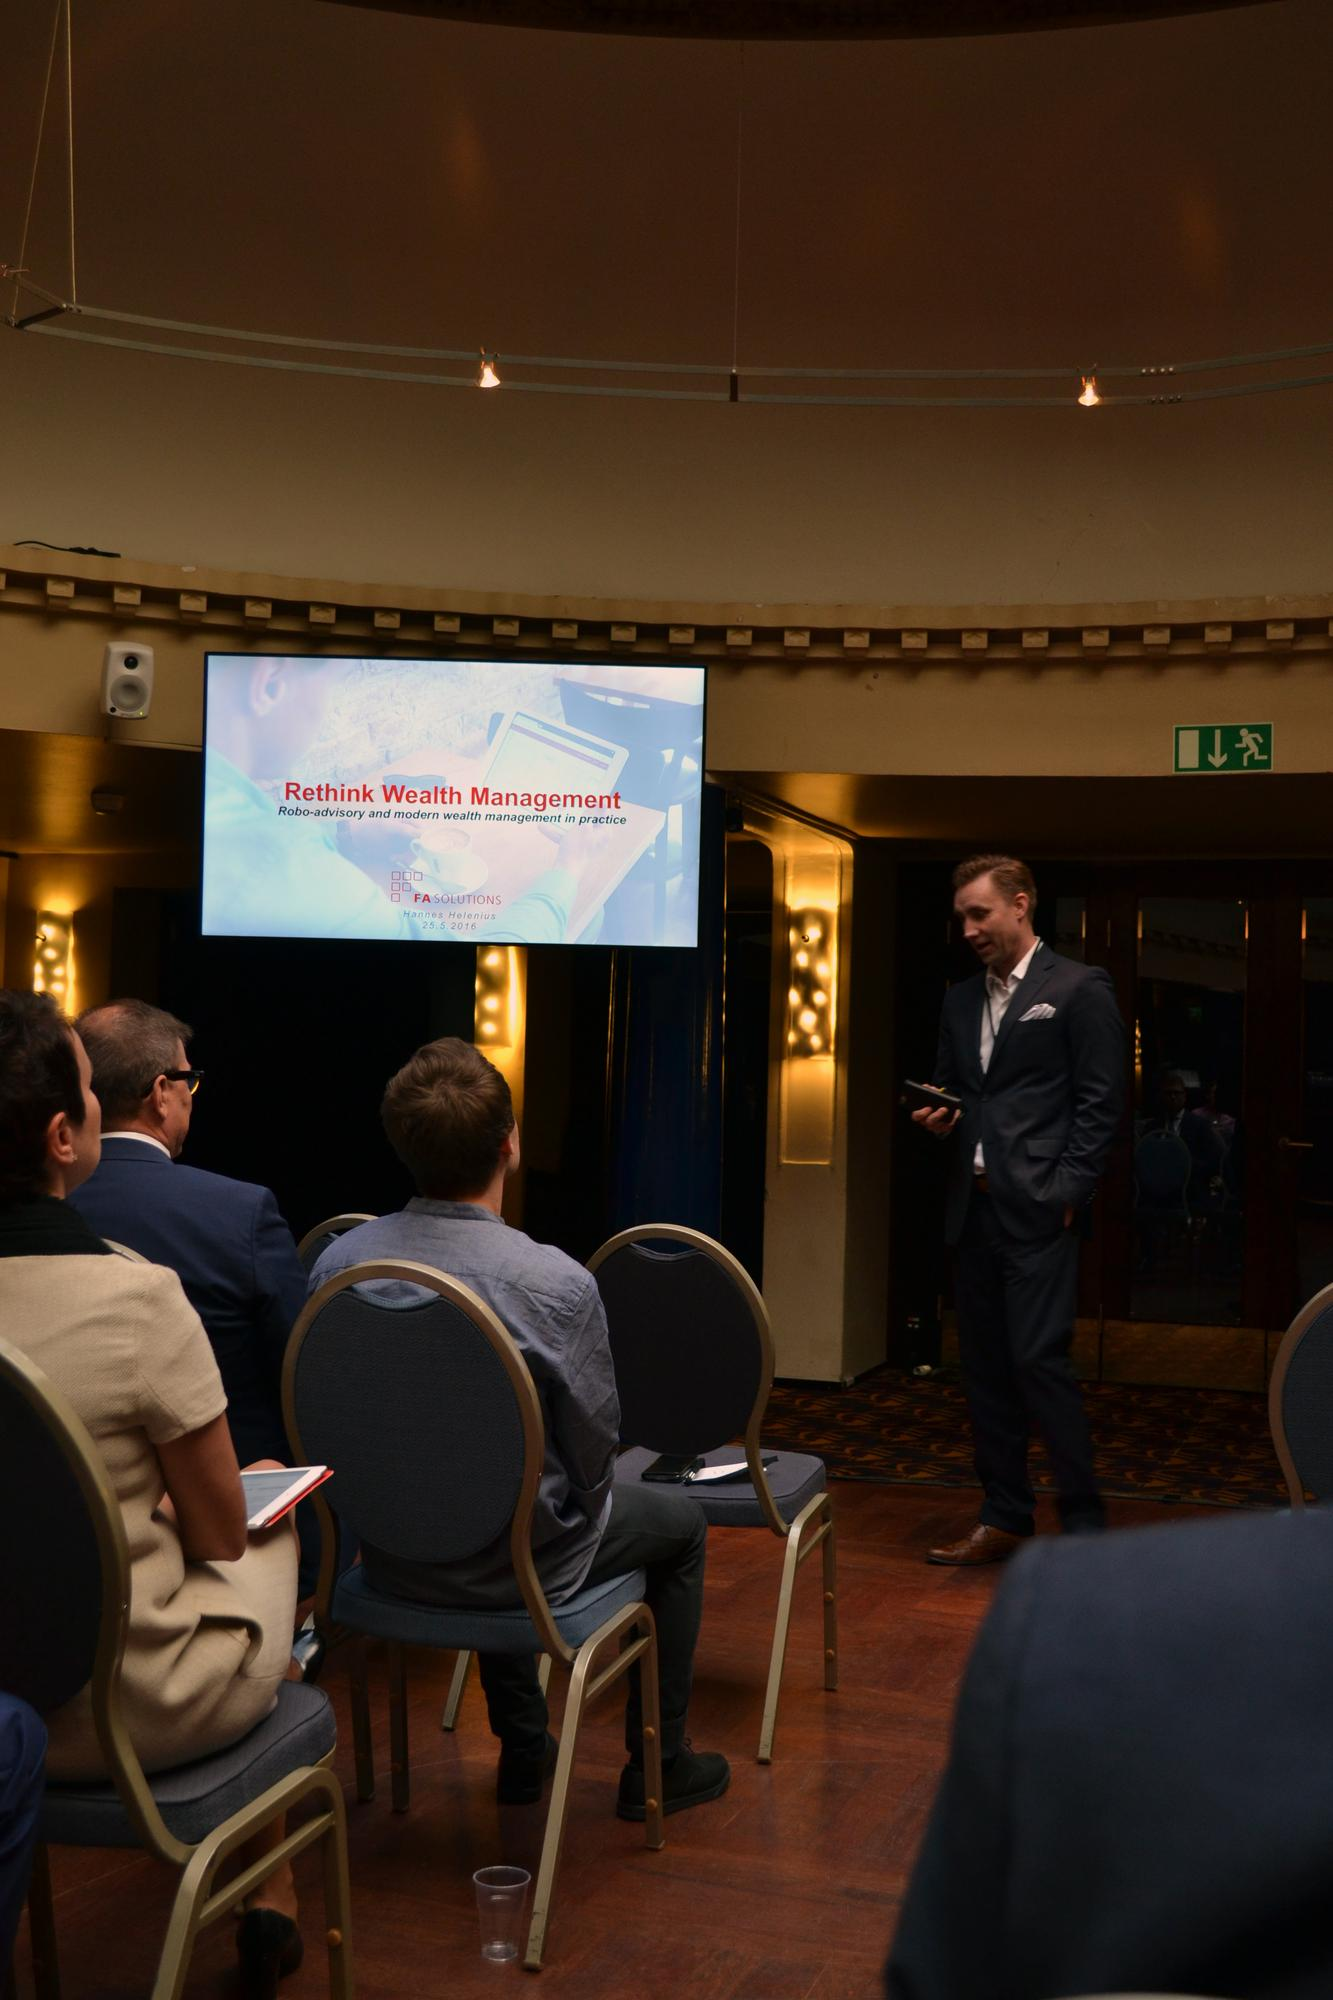 Hannes Helenius from FA Solutions presenting in Money16 event. © Anni Salo